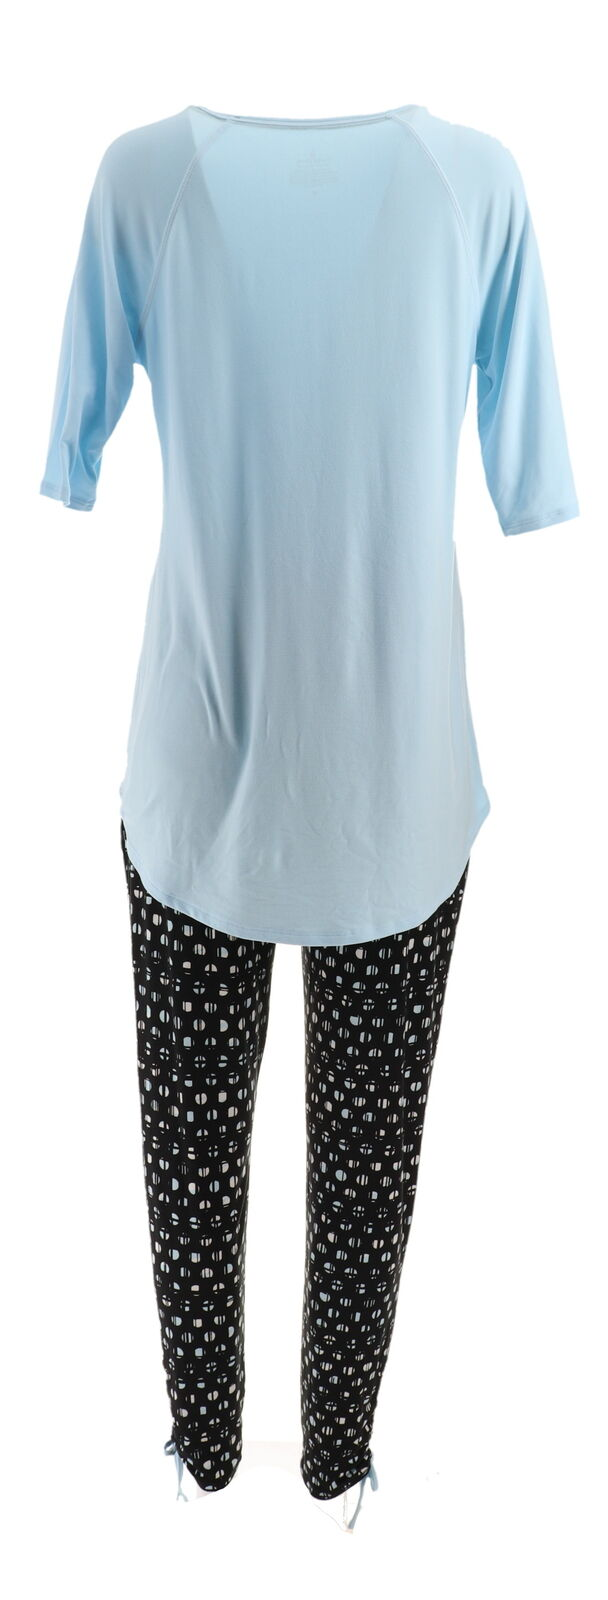 Cuddl Duds Short Slv Tee Cropped Pant Set Opal Grn Cactus L NEW A346880